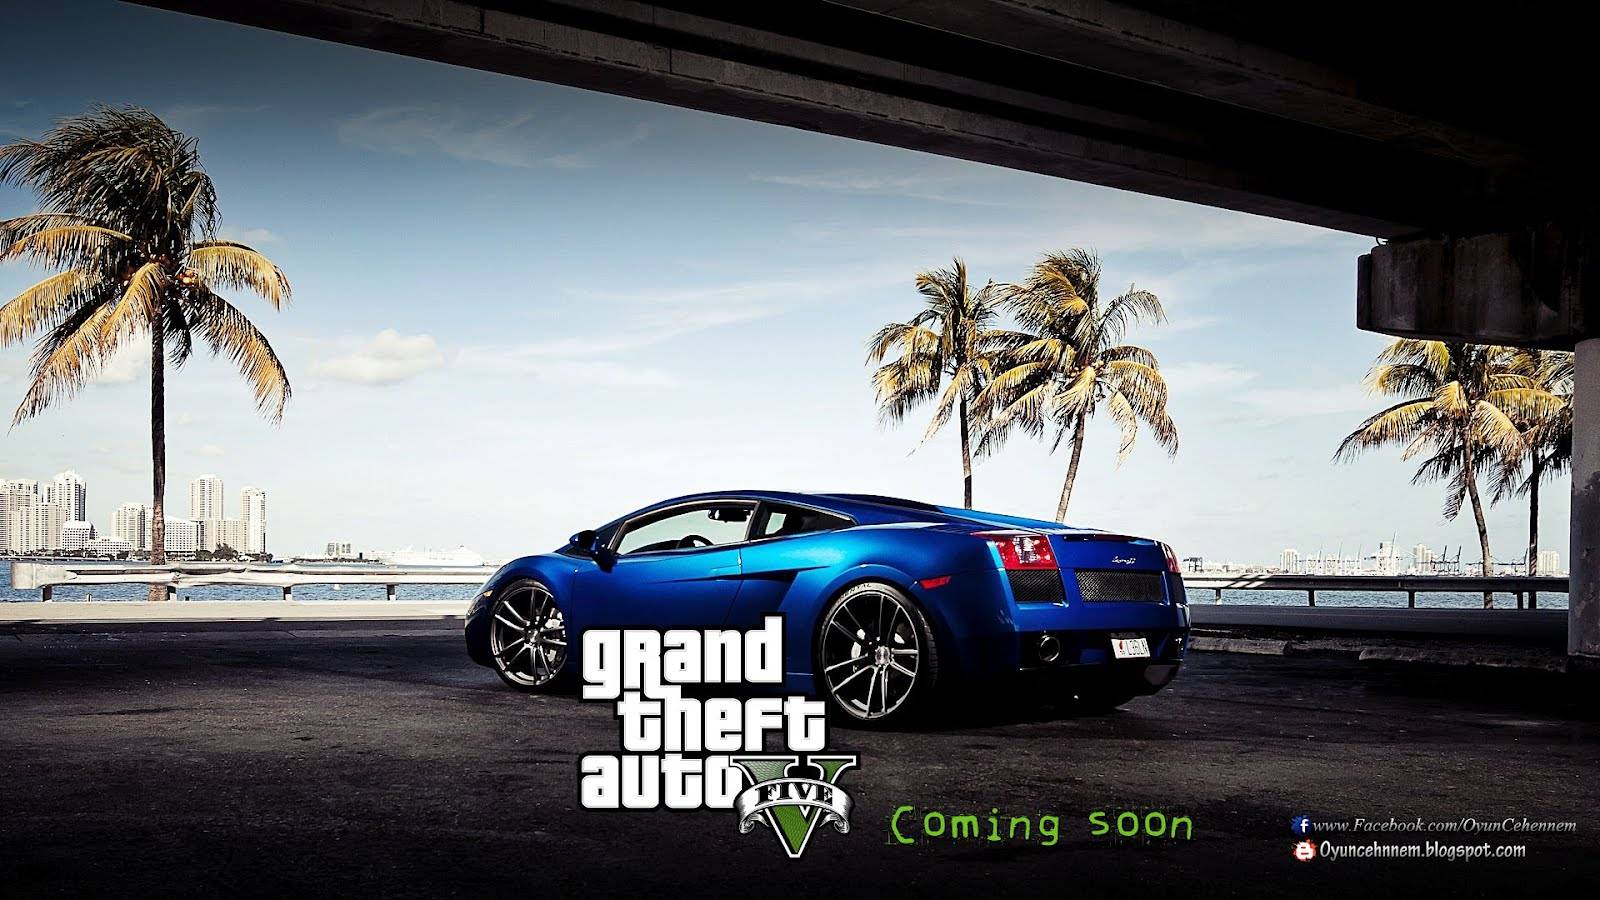 auto v hd wallpapers gta 5 wallpapers hd oyun cehennem 1600x900